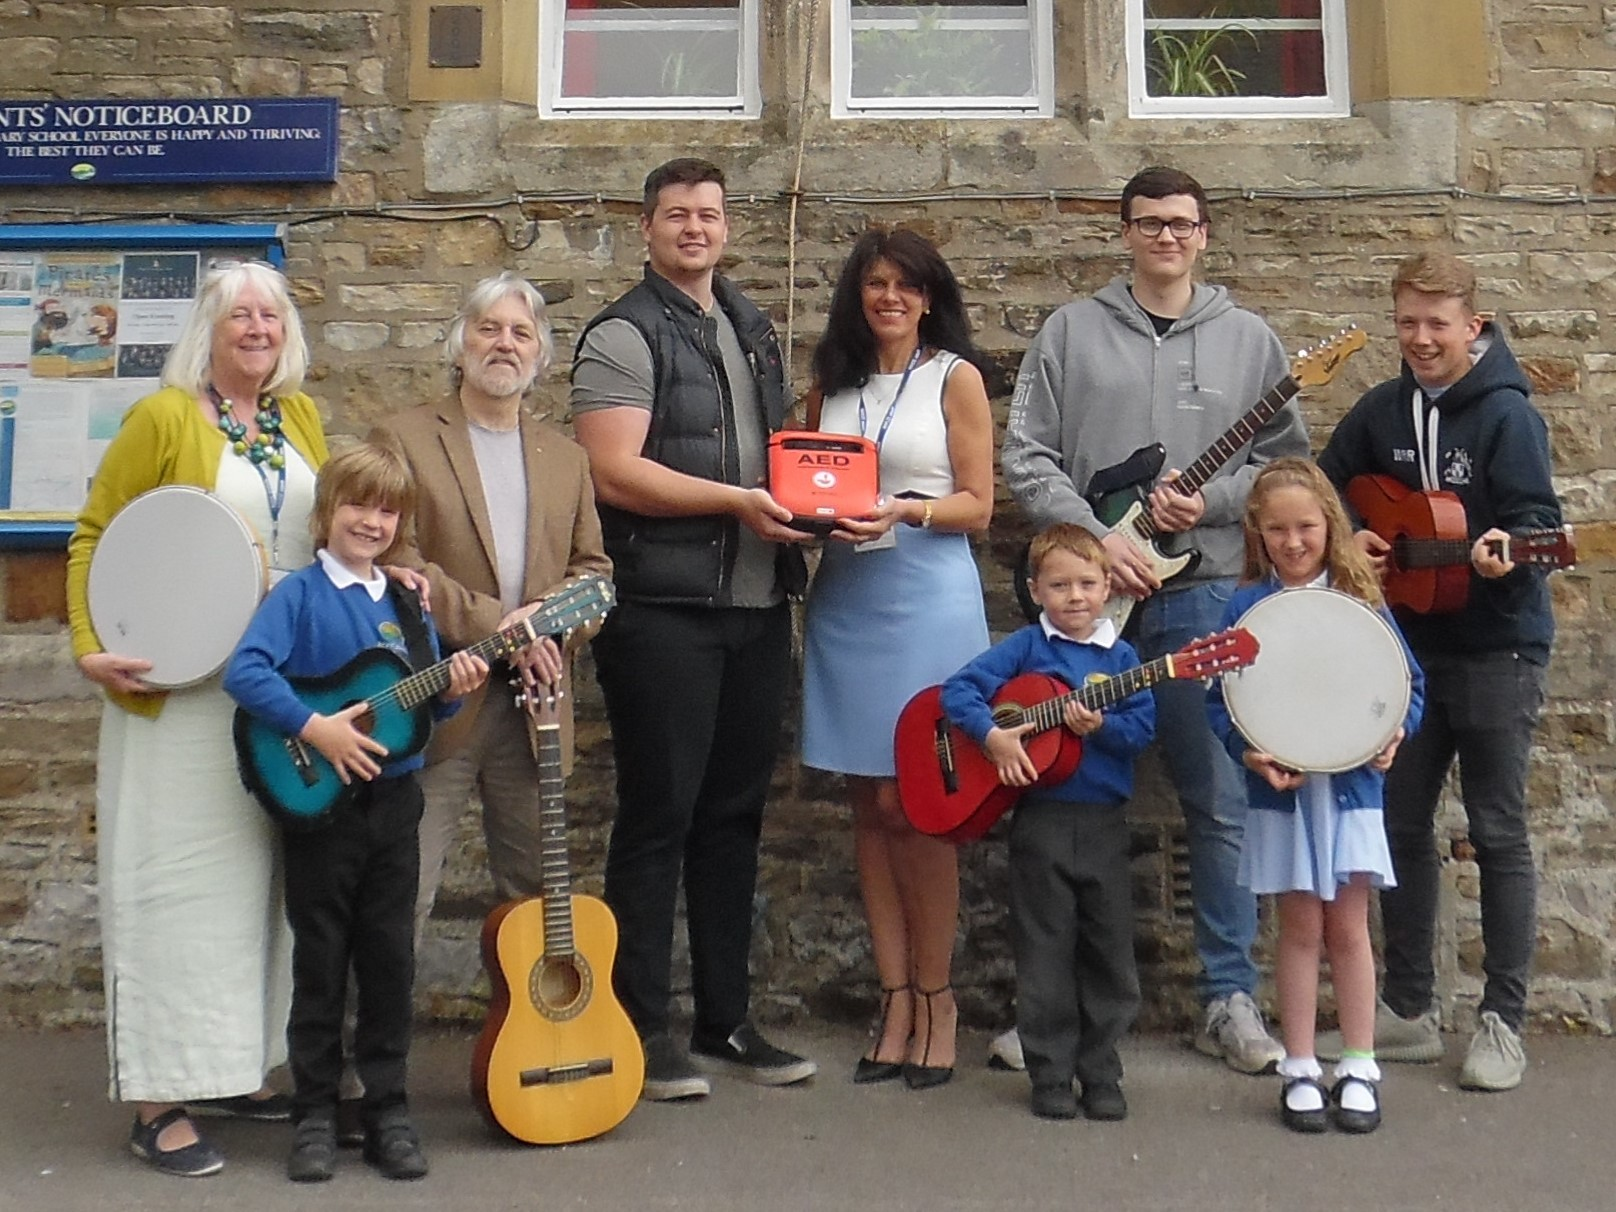 Teaching Assistant Pam Windle and Graham Windle; School Manager, Tracy Briggs; Will Collins, George Collins and Will Richmond from Shrymp Inc.; and three pupils from the after school Rock Club - Jake White, Jacob Lambert and Ellie Close.